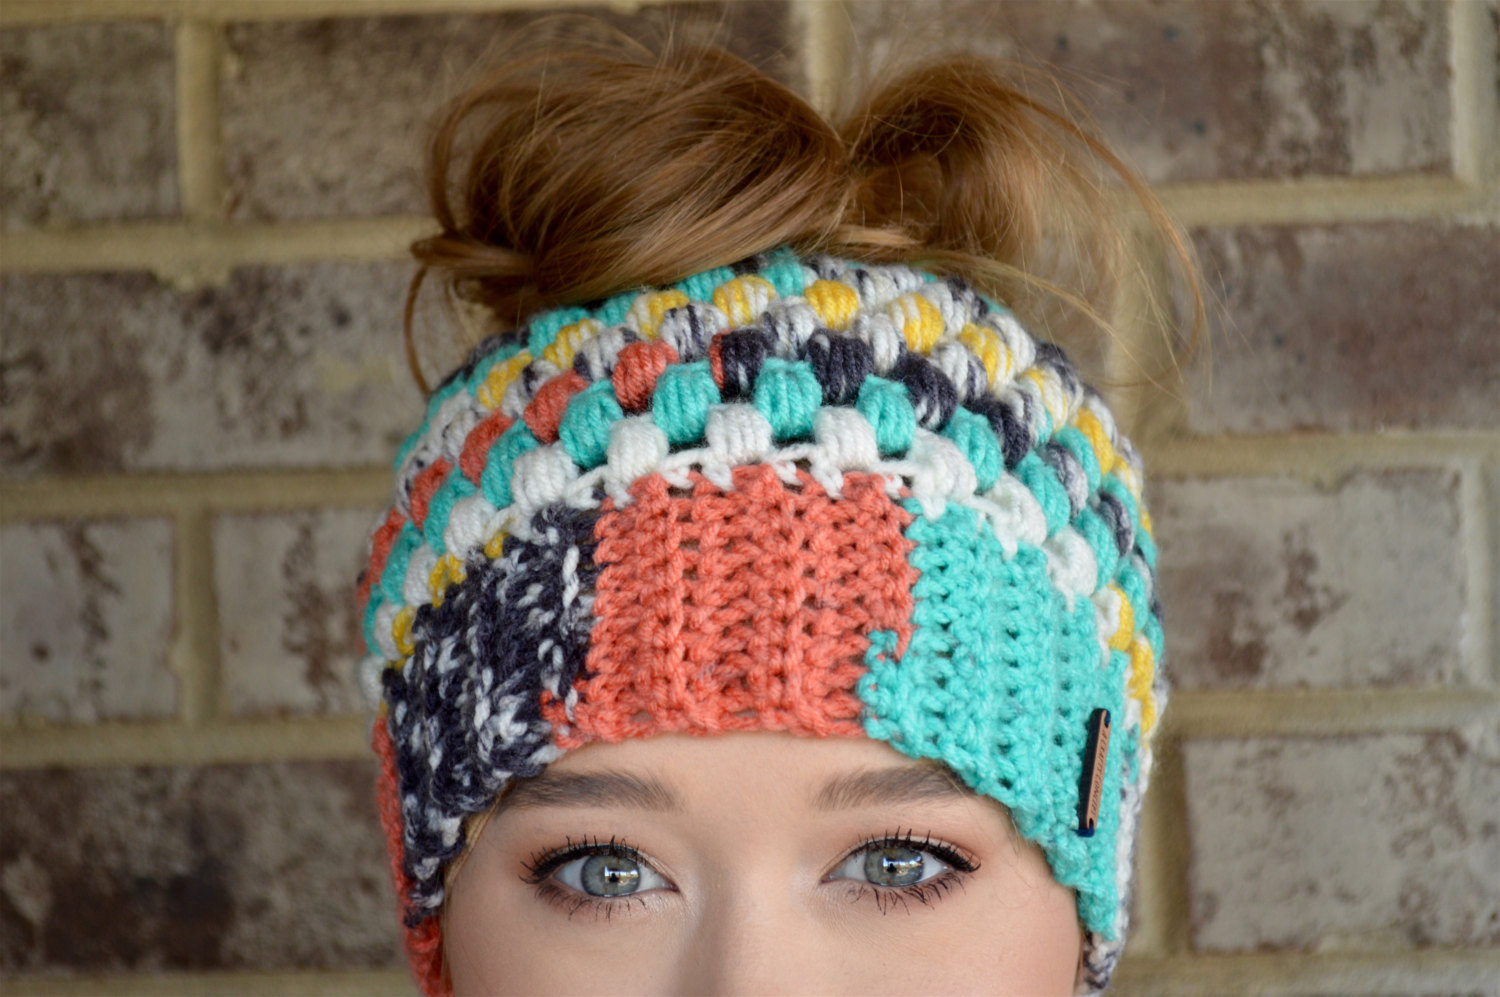 Crochet Messy Bun Beanie Best Of top Knot Beanie Crochet Messy Bun Beanie Mom Bun Beanie Man Of New 43 Photos Crochet Messy Bun Beanie